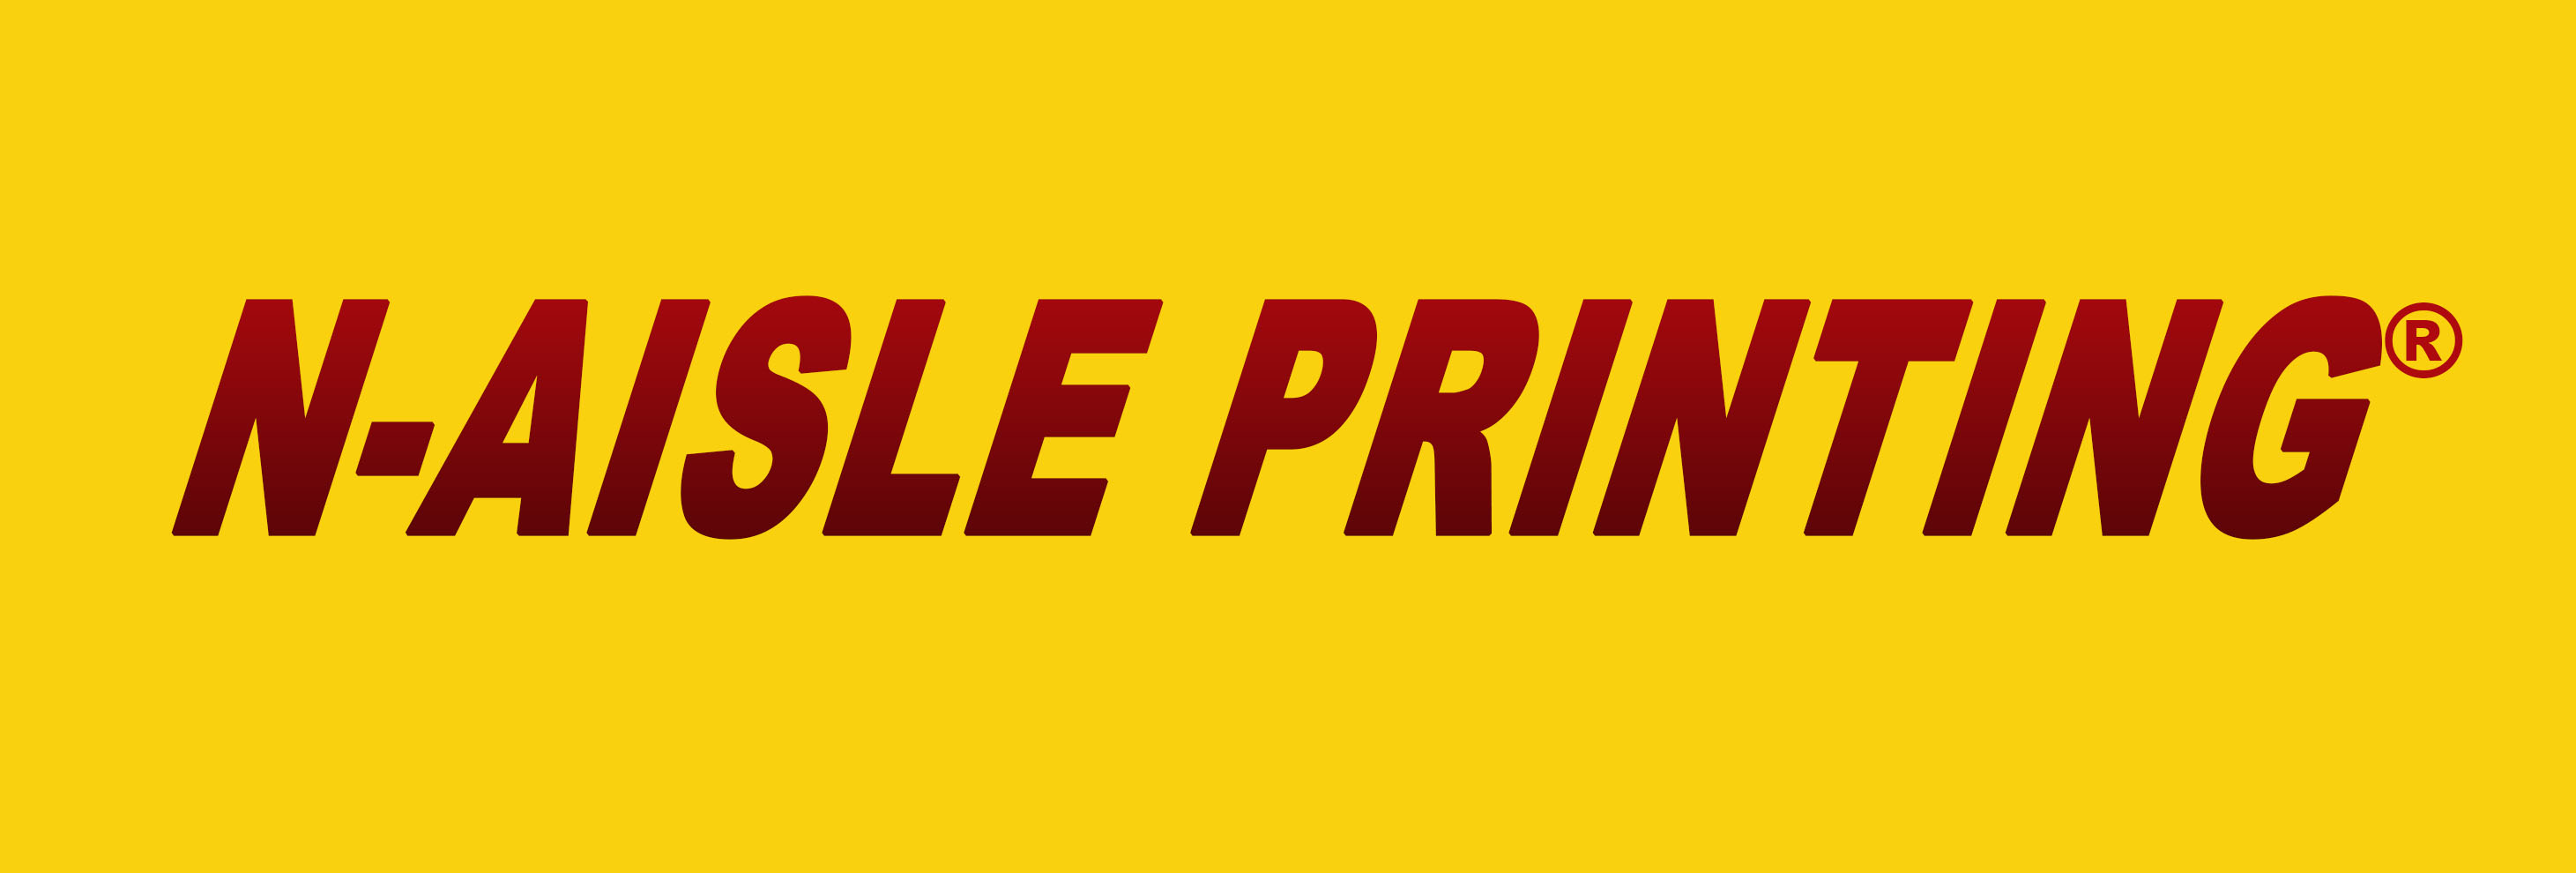 N-Aisle Printing Solutions for Retail Stores